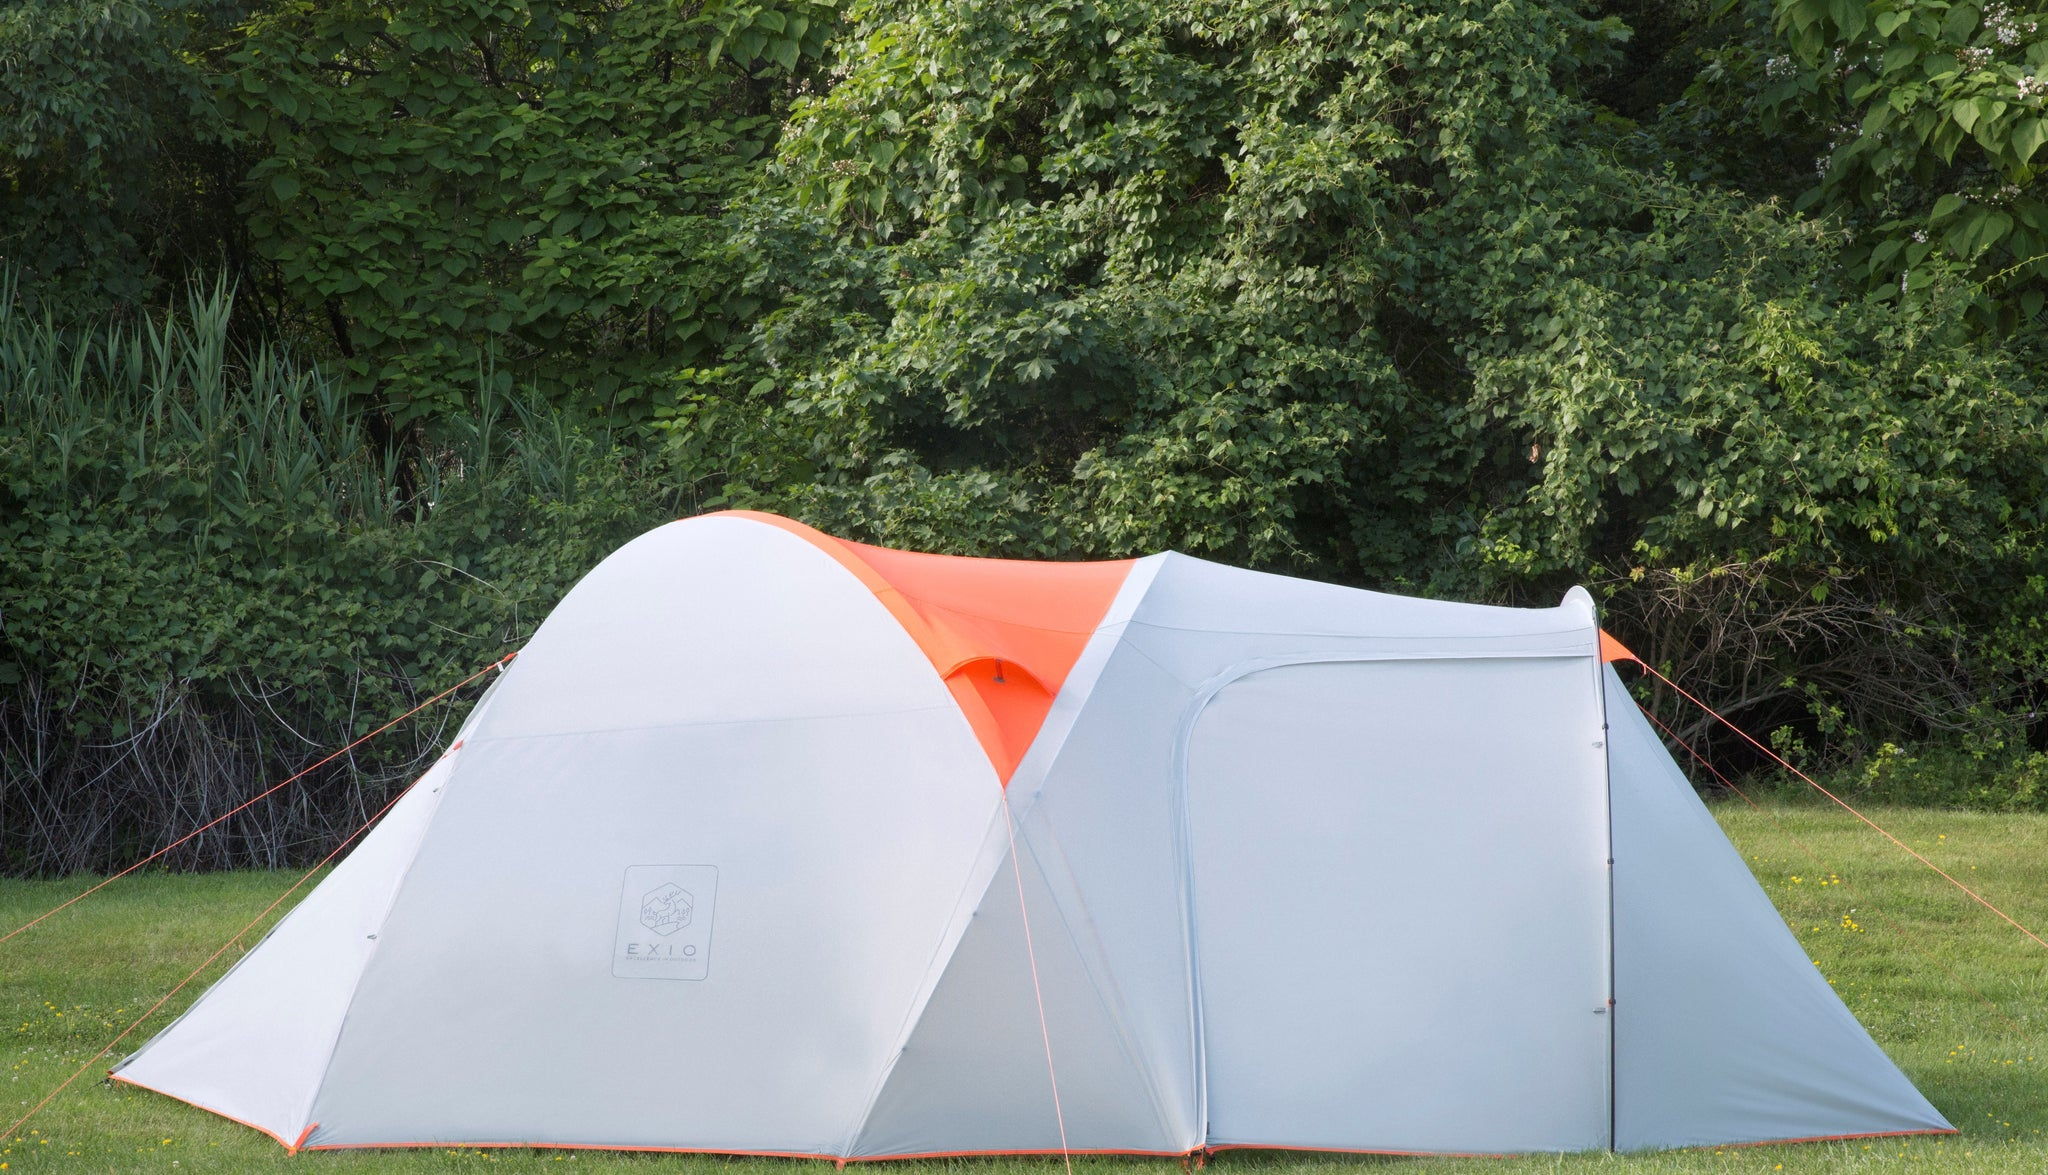 ... 6-Person Compact Backcountry Tent ... & 6-Person Compact Backcountry Tent u2013 EXIO Gear